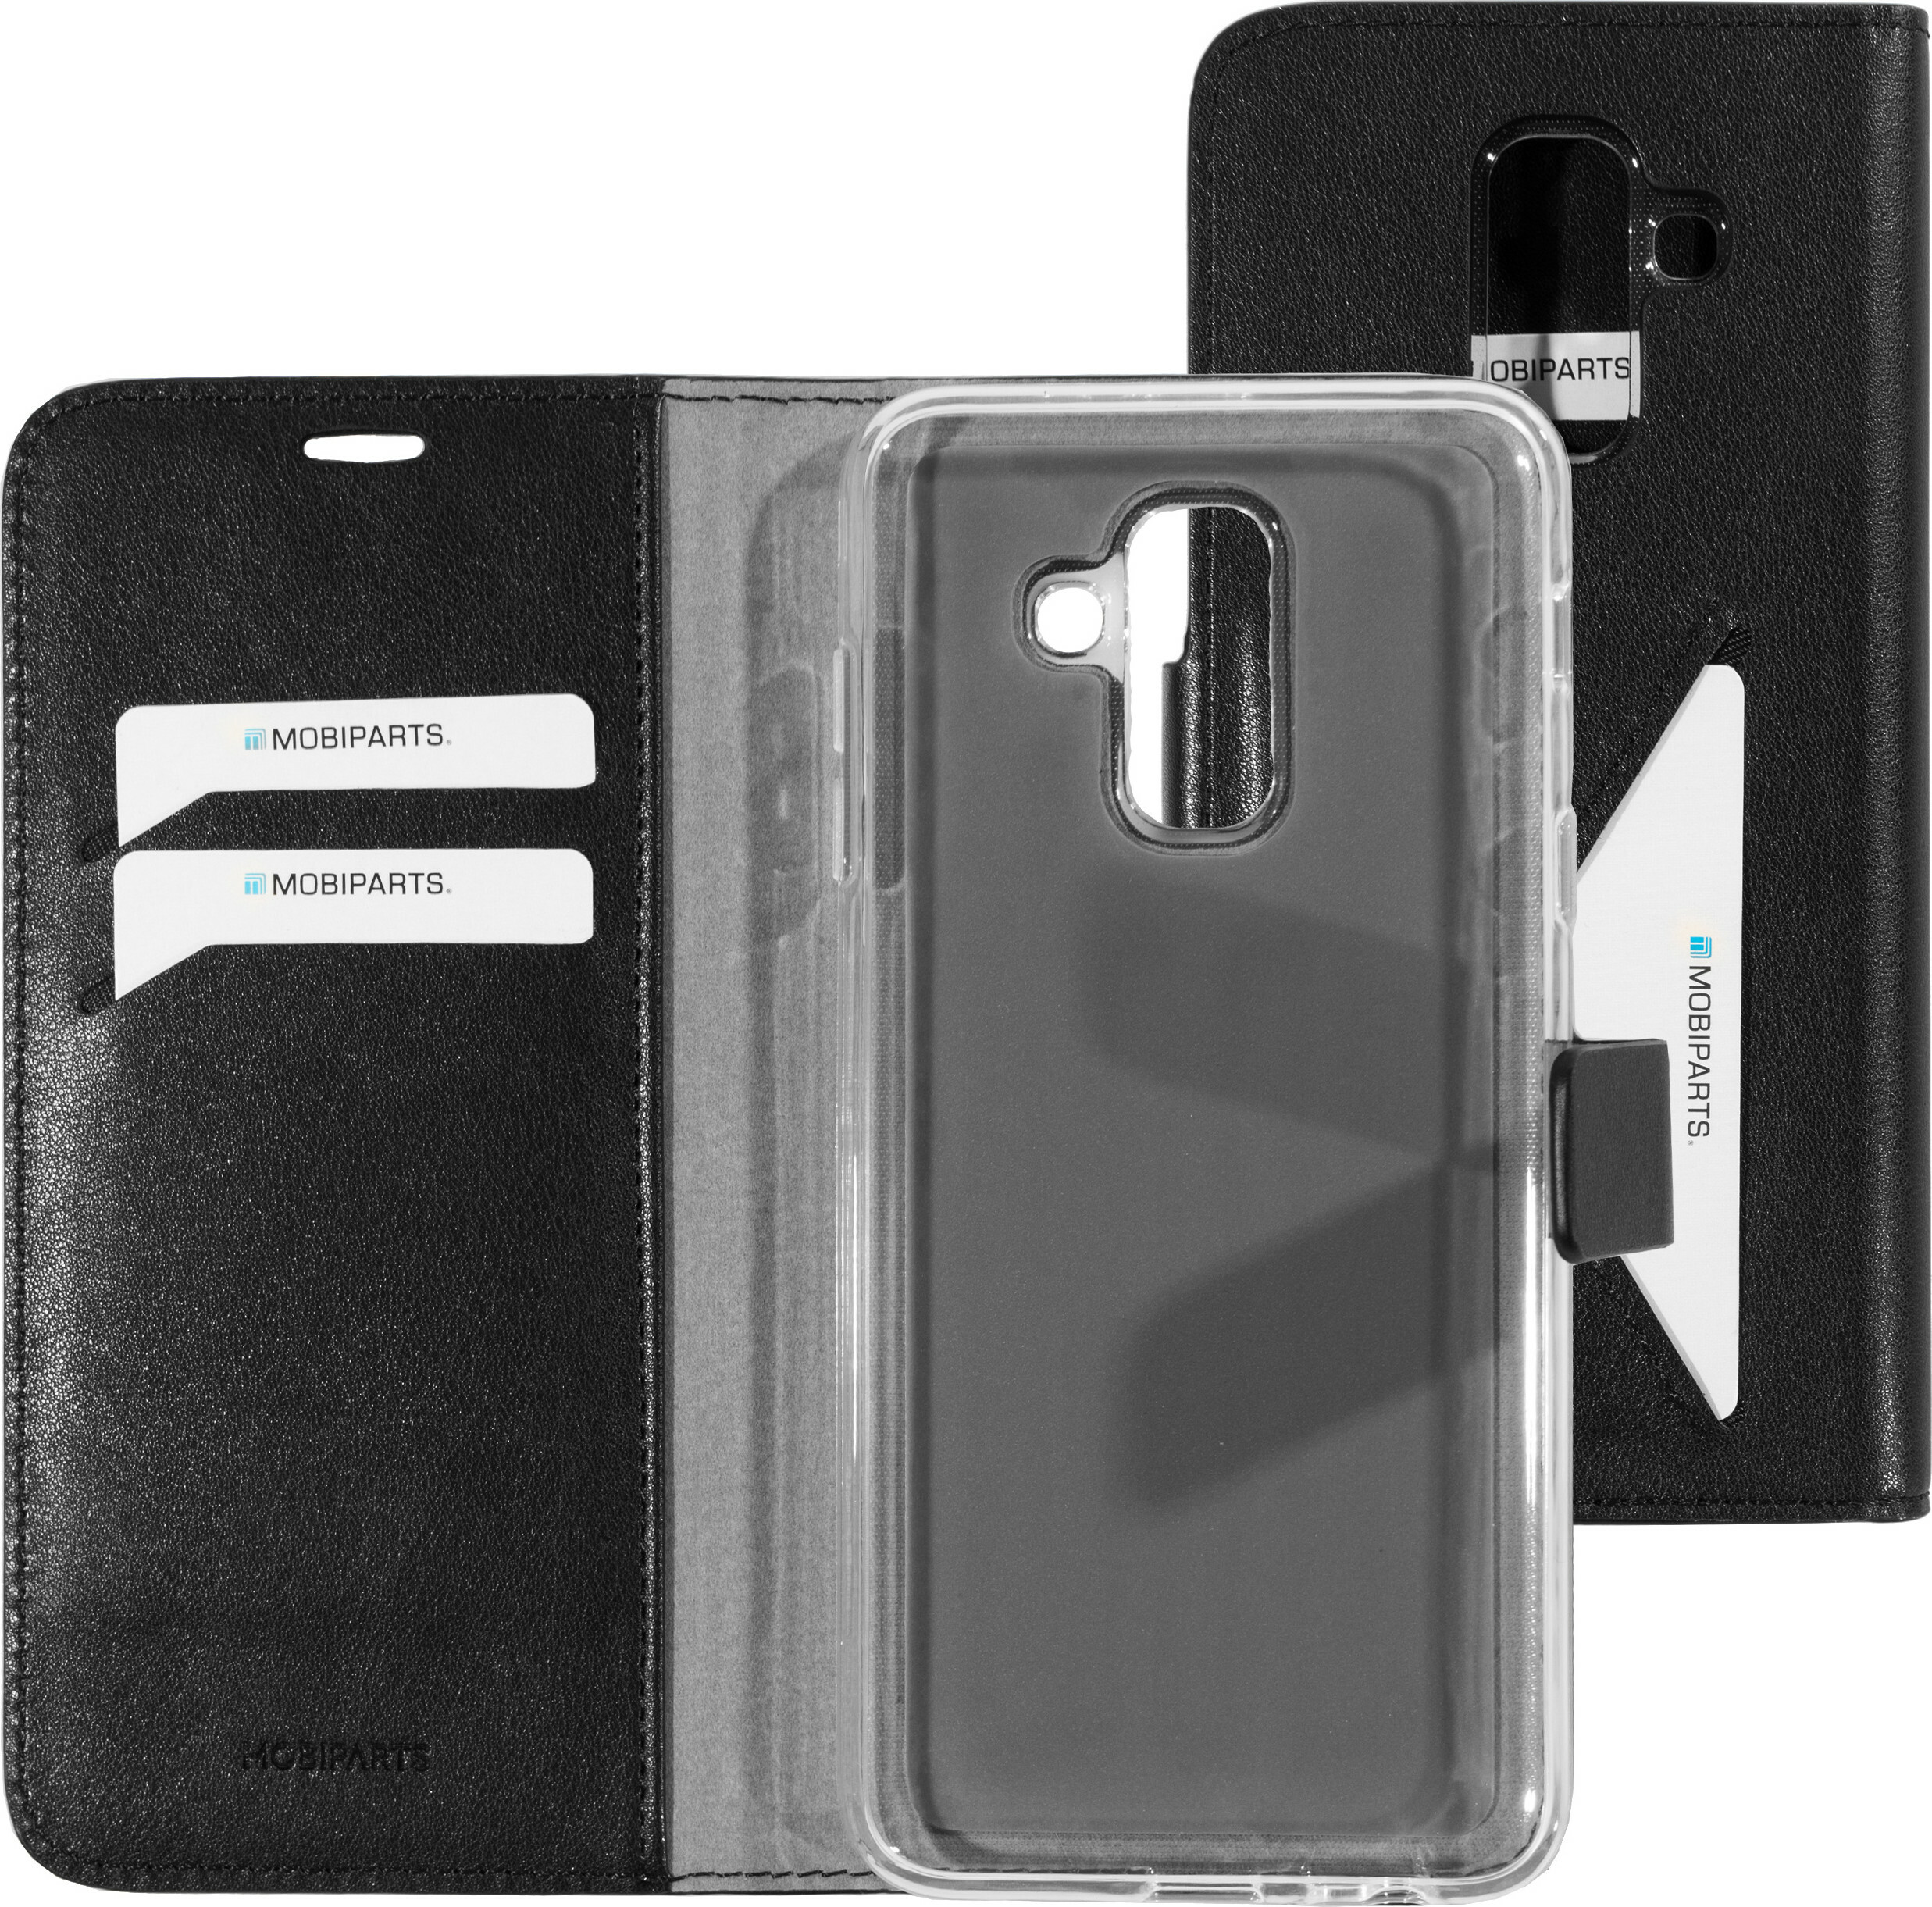 Mobiparts Classic Wallet Case Samsung Galaxy A6 Plus (2018) Black